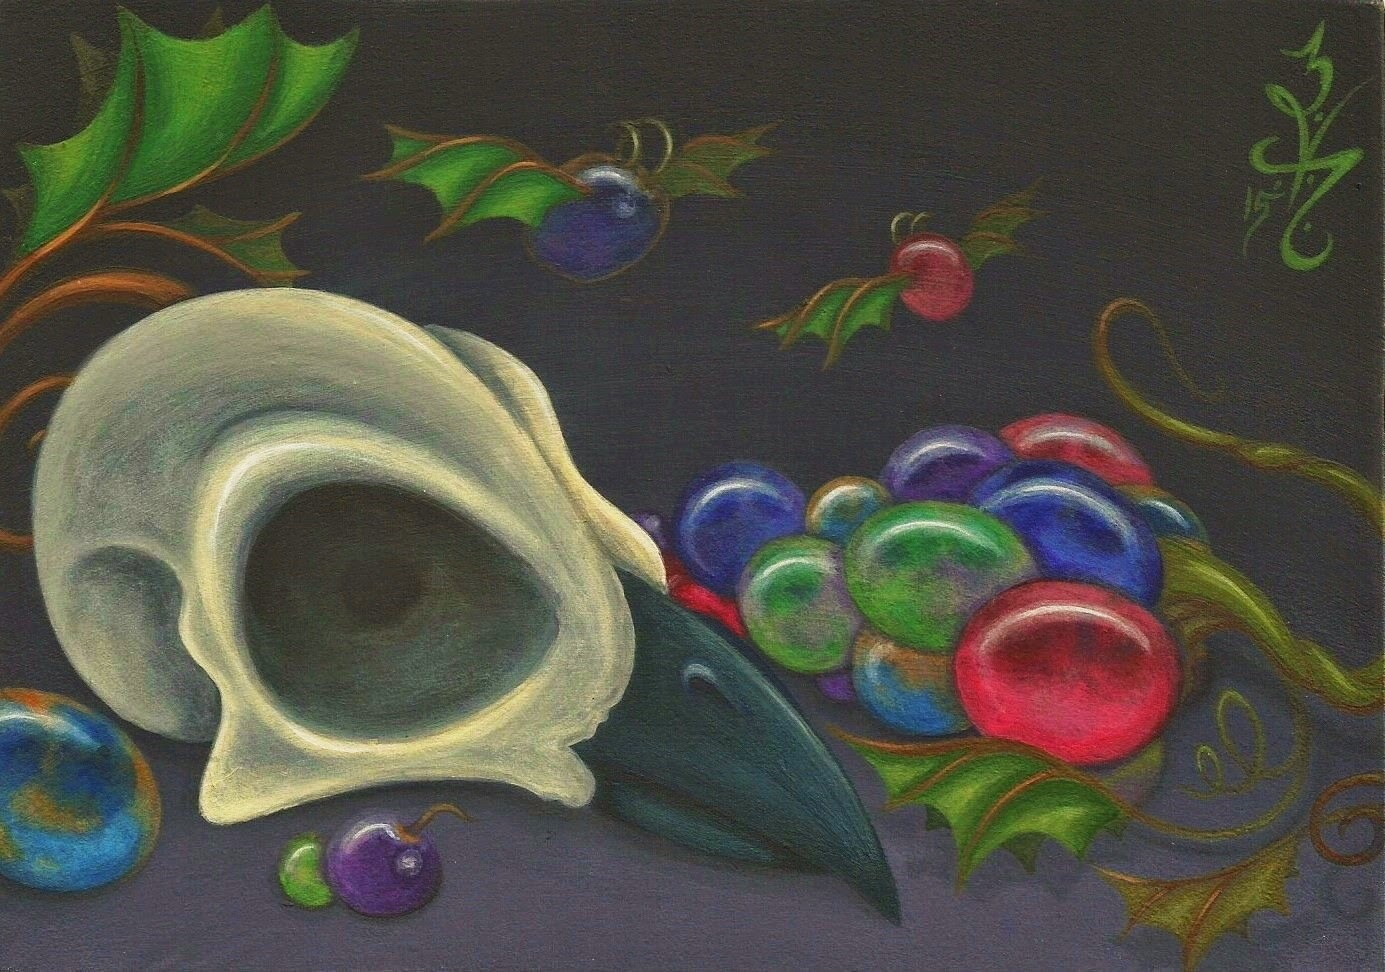 https://www.etsy.com/listing/226992667/original-fantasy-bird-skull-raven-grape?ref=shop_home_active_1